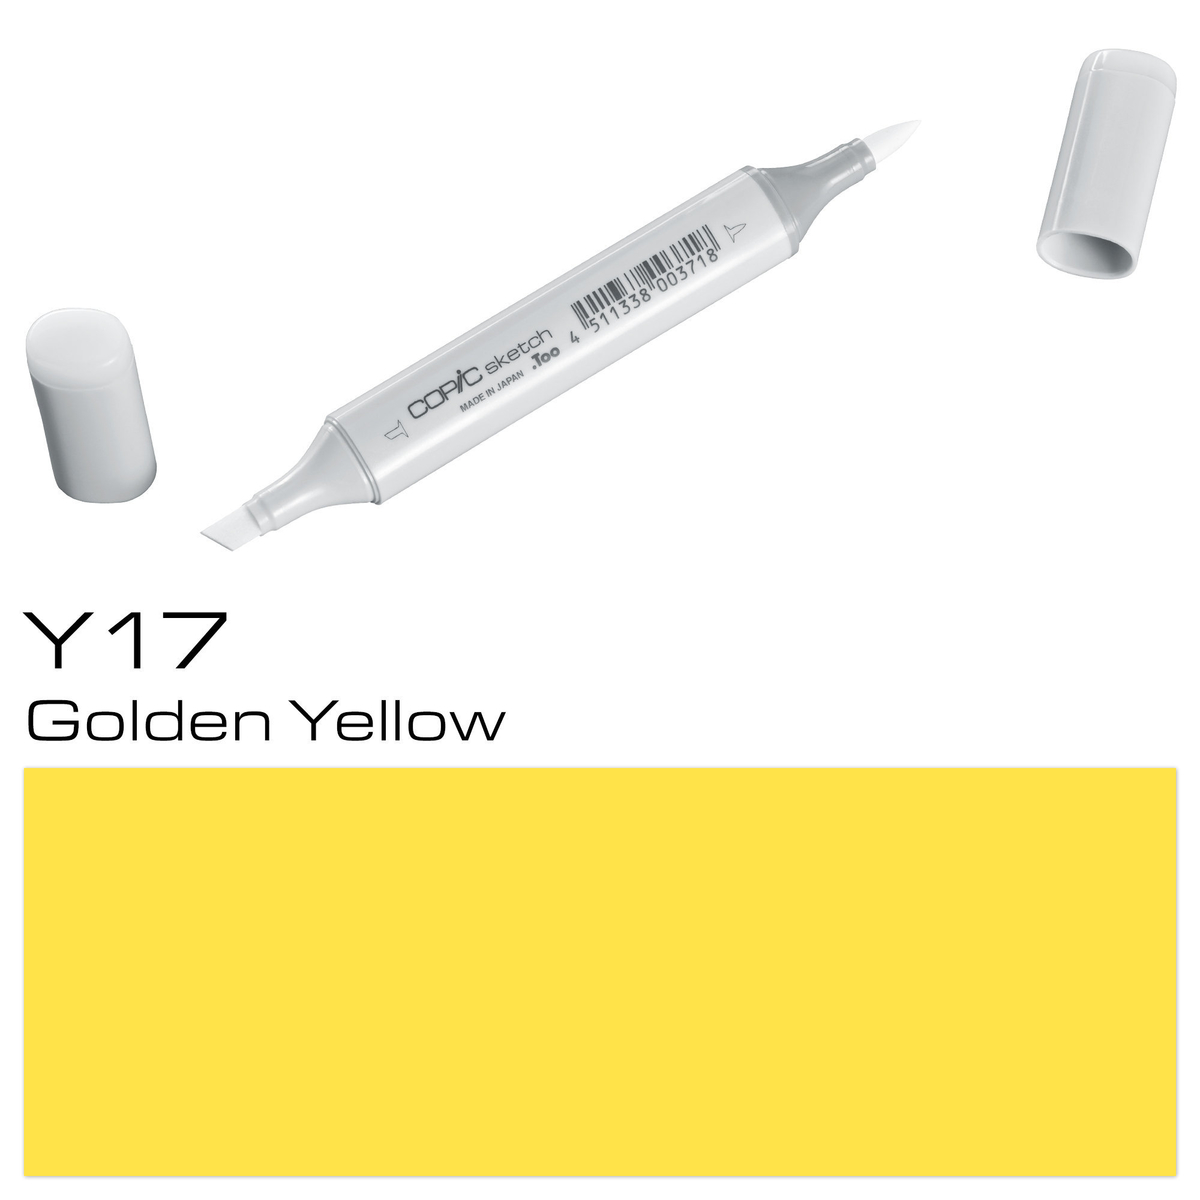 Copic Sketch Y 17 golde.yellow